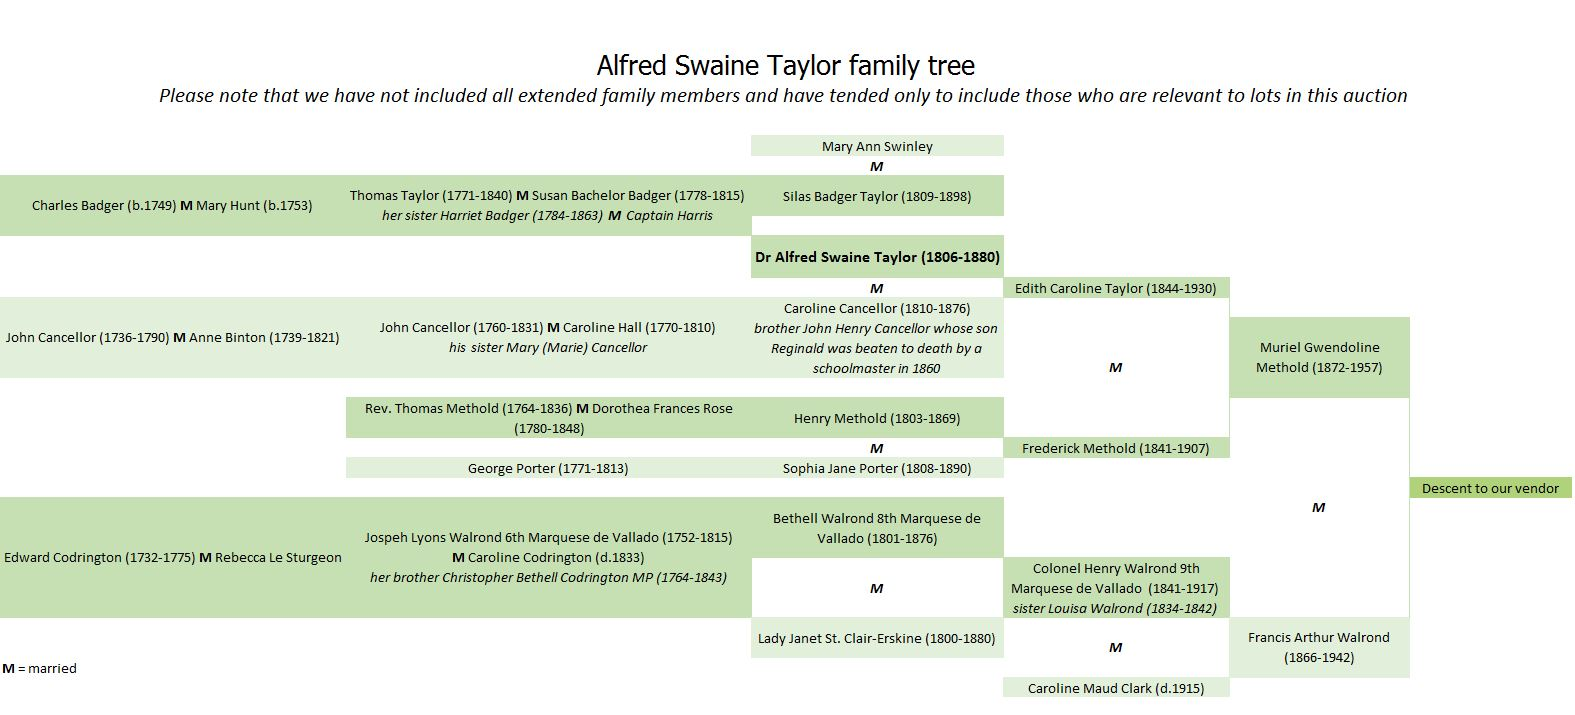 Alfred Swaine Taylor family tree